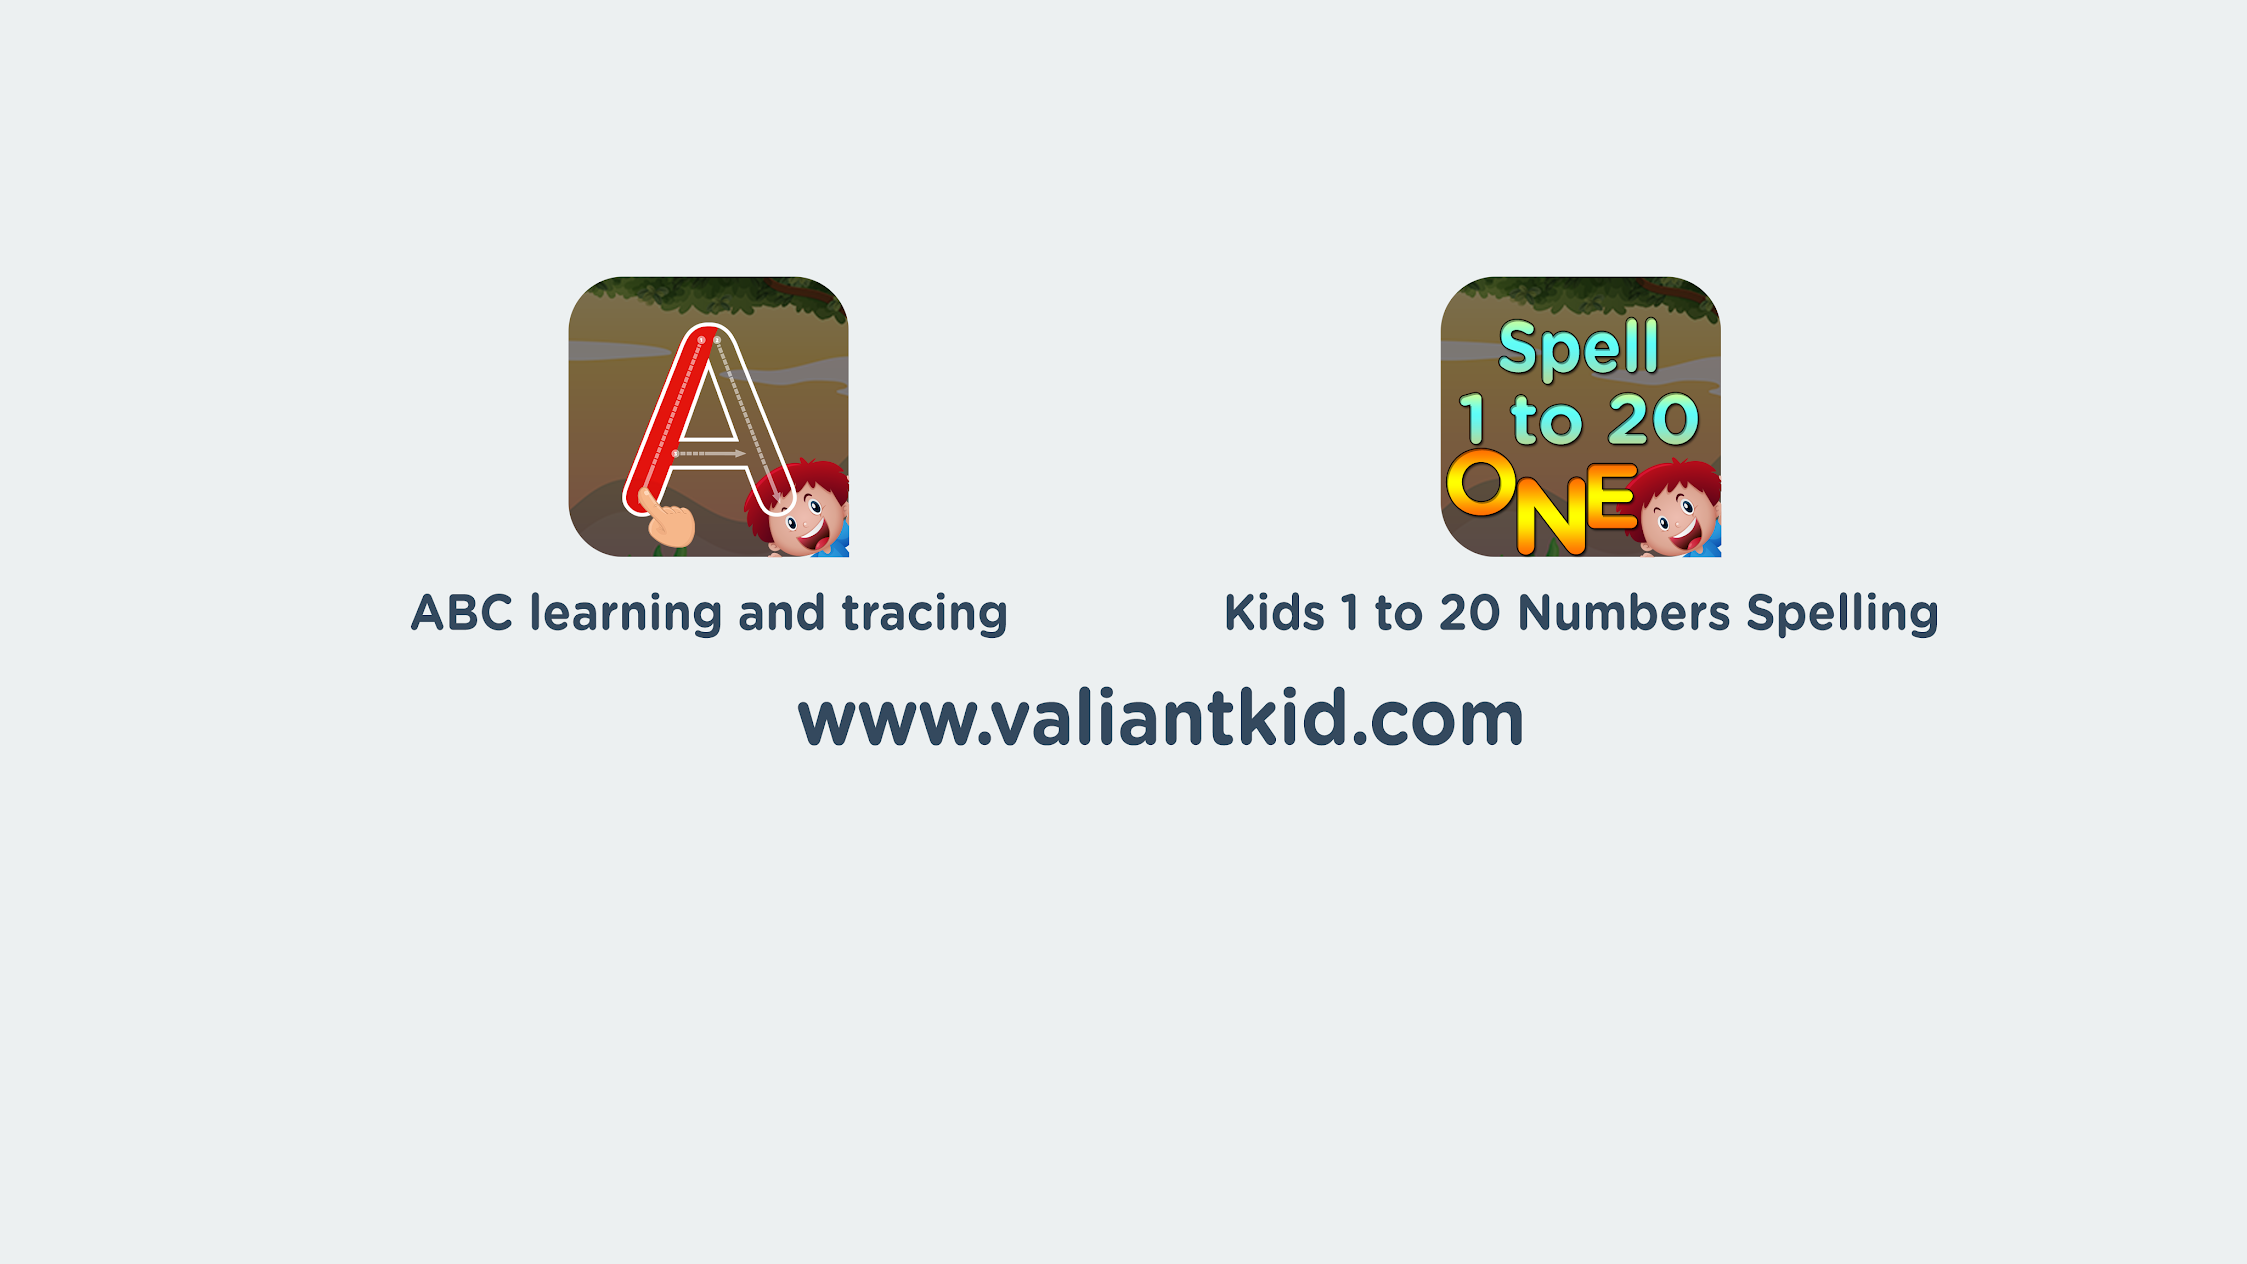 ValiantKid - Kids Educational and Learning Games